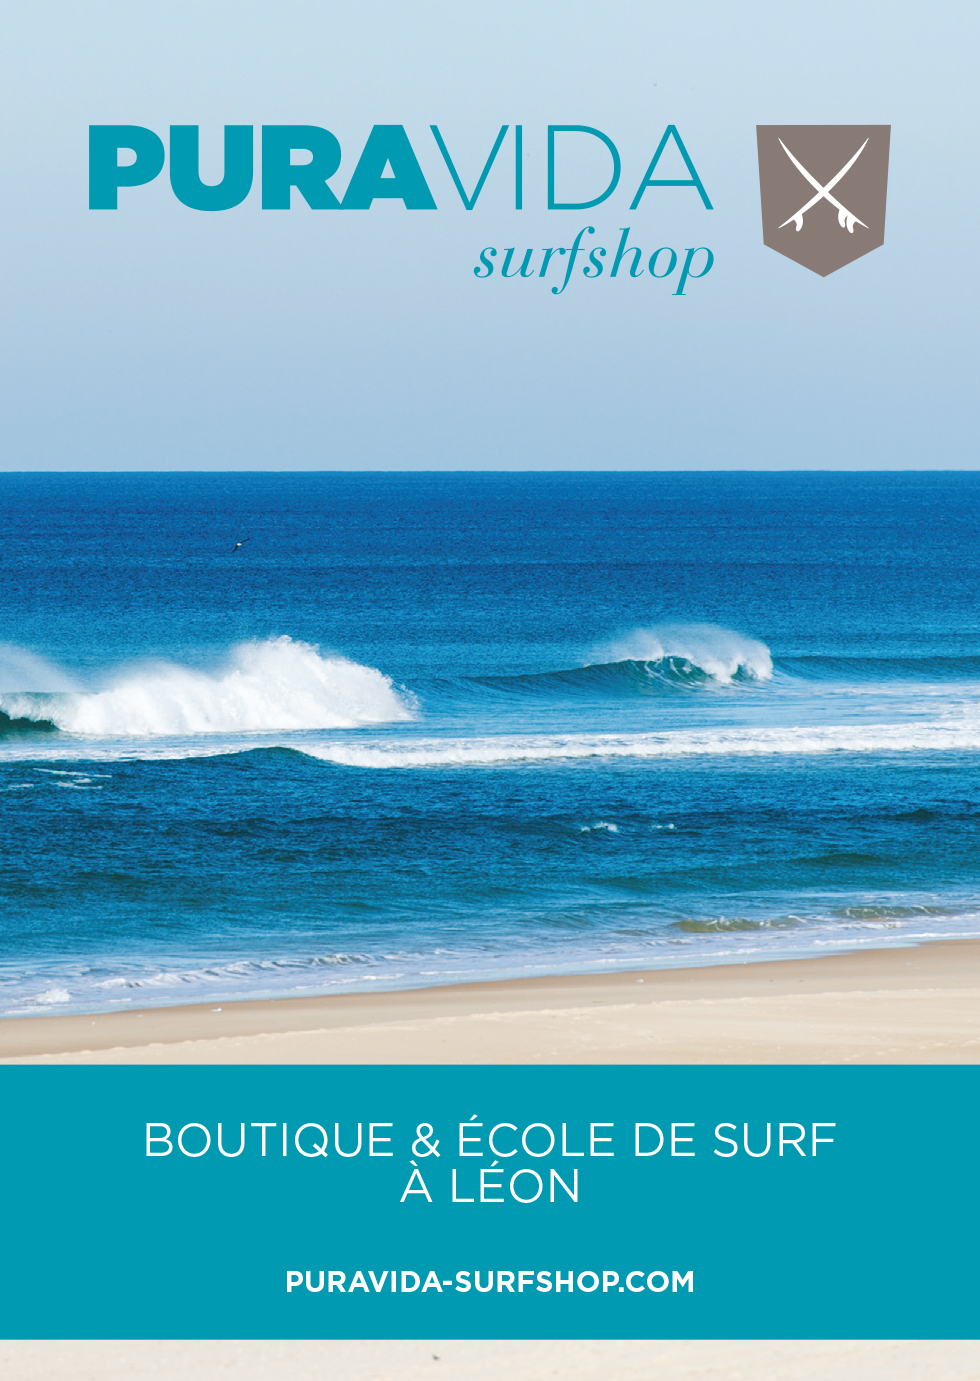 Pura vida surf shop et surf school a leon activit s for Pura vida pdf